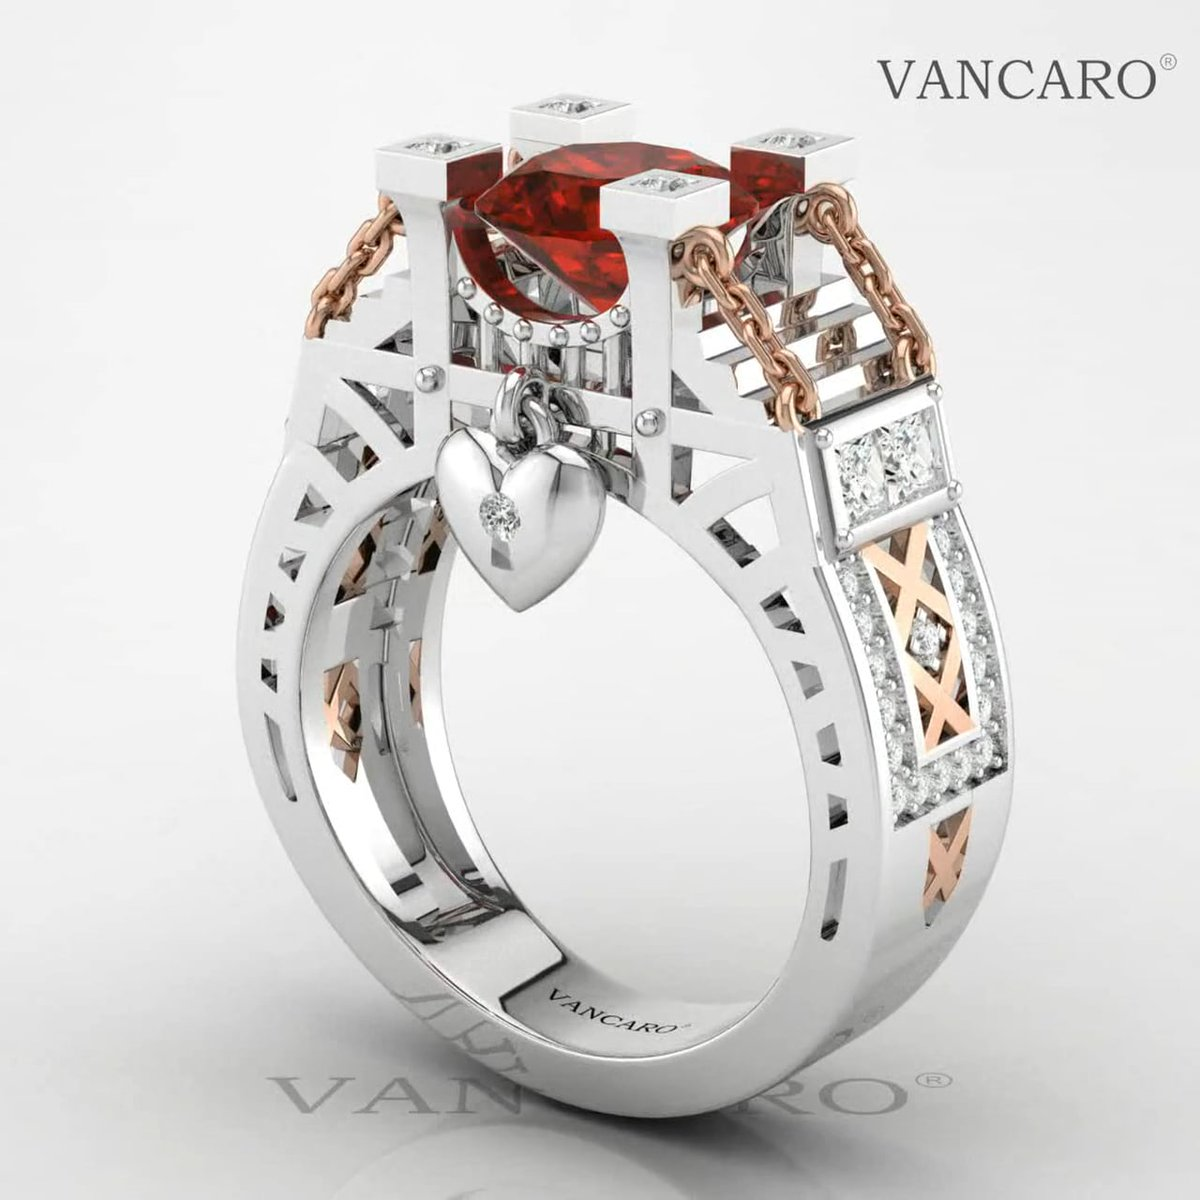 Vancaro Jewelry Location